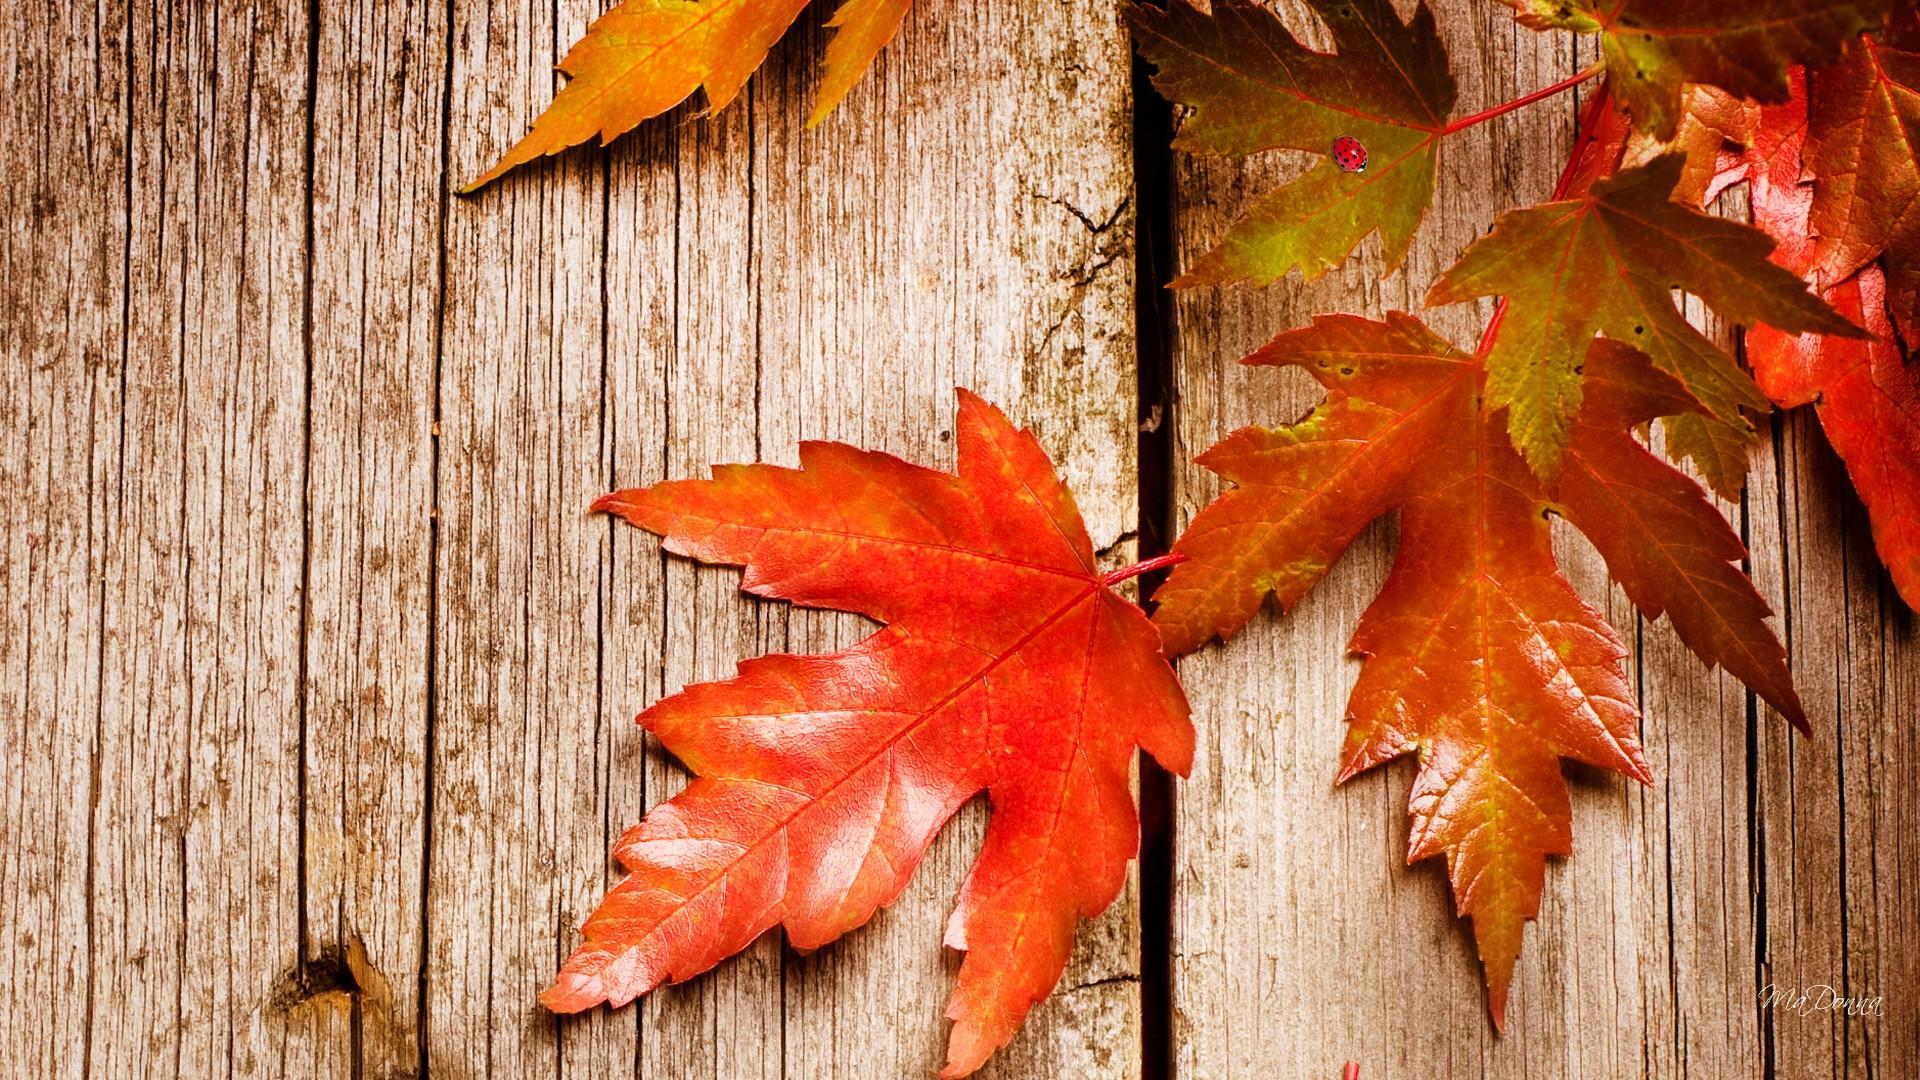 Rustic Fall Wallpapers   Top Rustic Fall Backgrounds 1920x1080